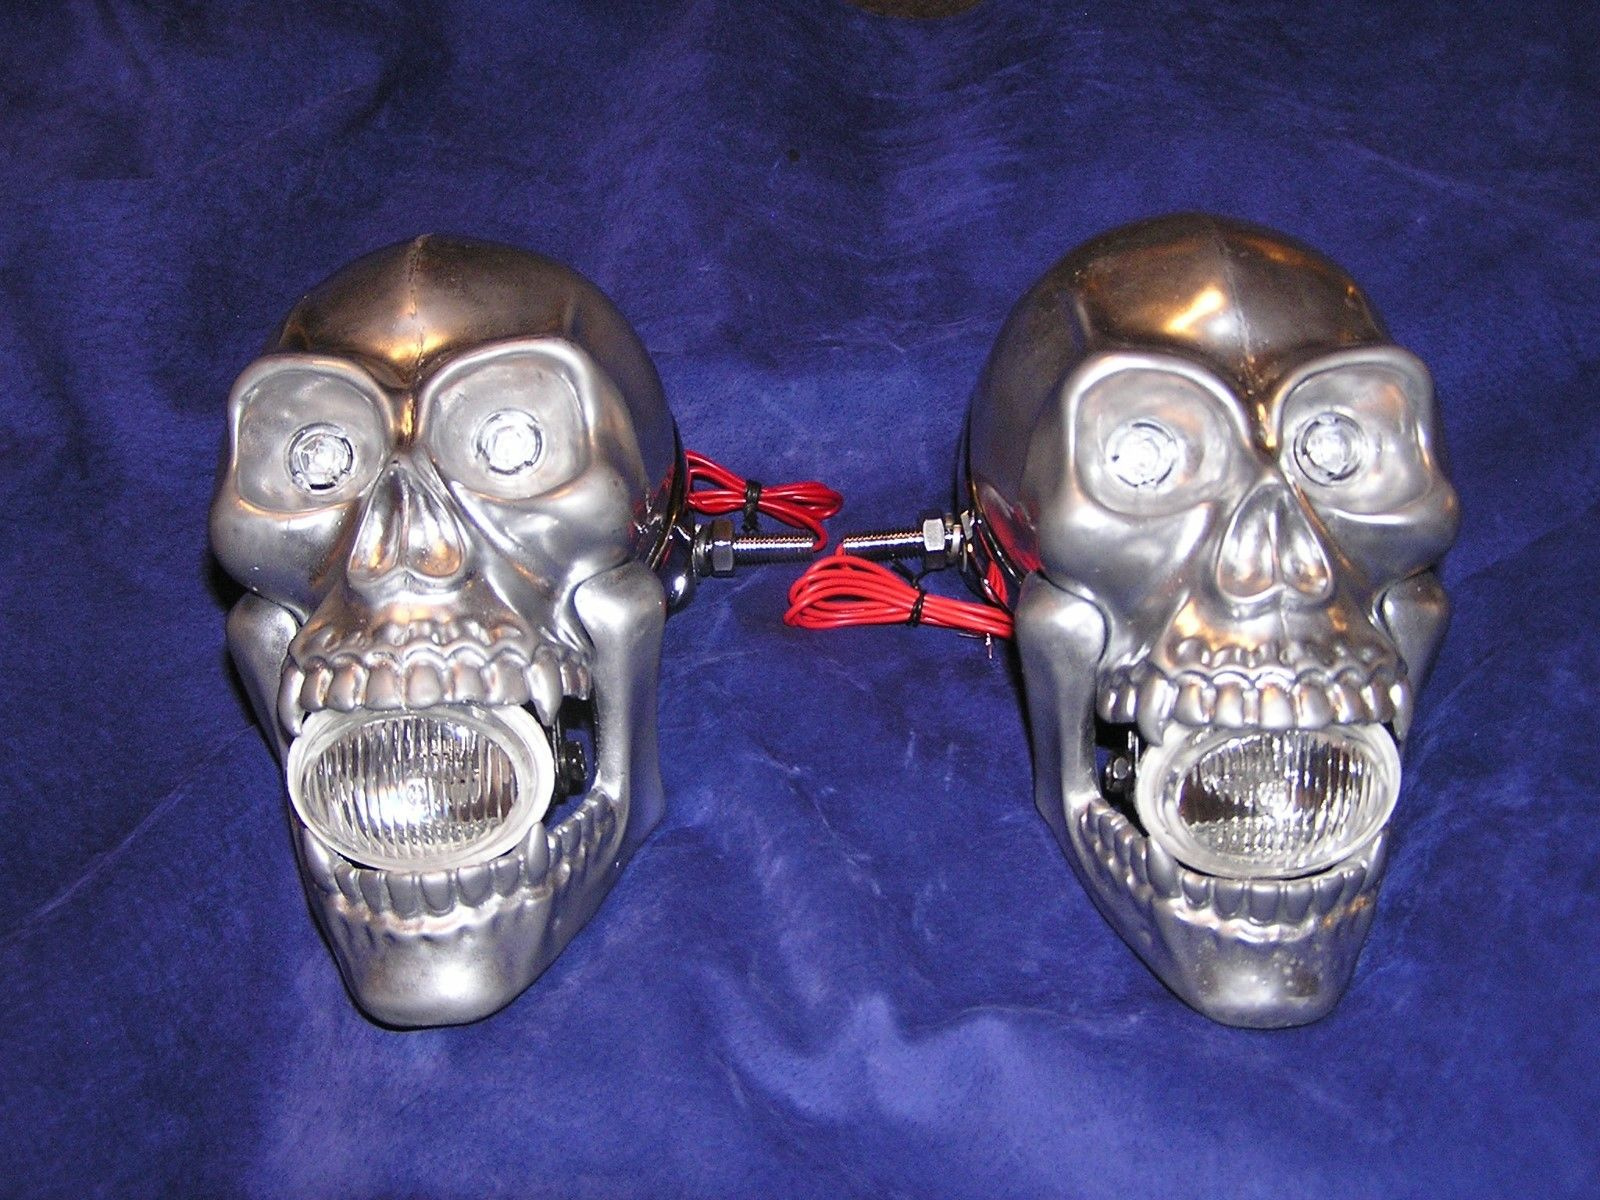 Set of Skull Head/Side/Fog Lights. Hand Made in the USA By RBD. Does not apply